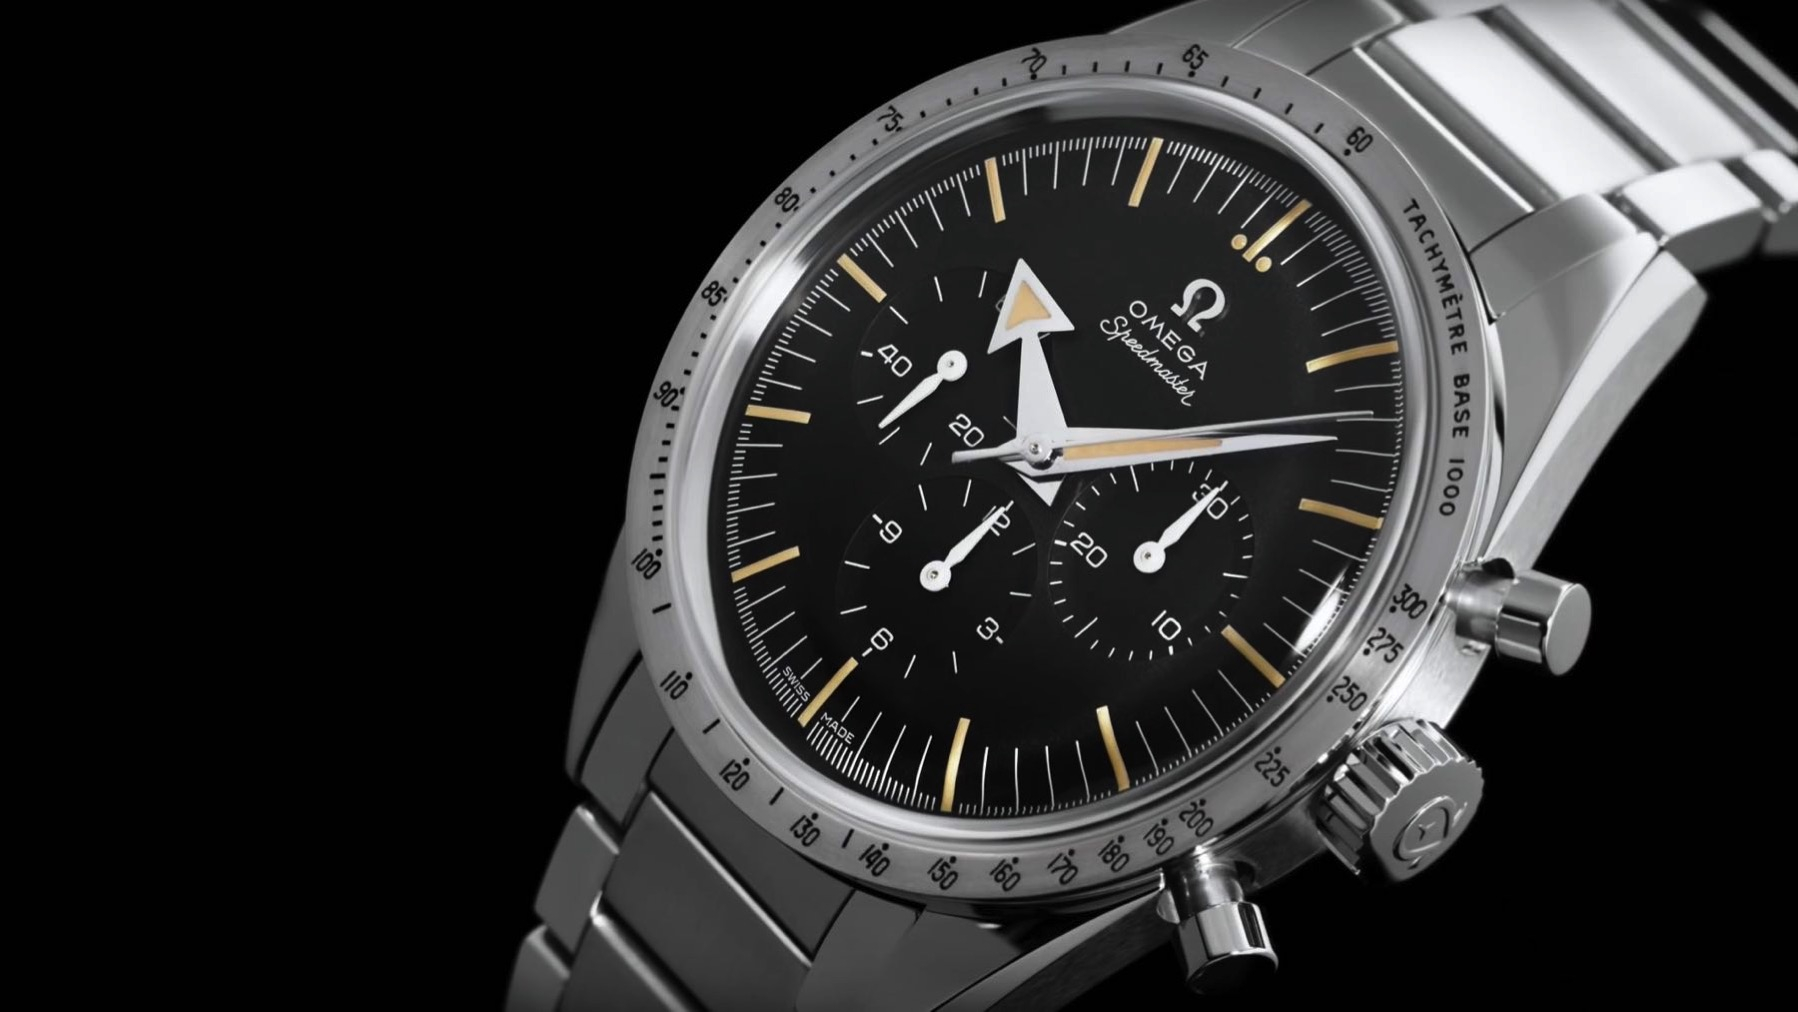 03 OMEGA 1957 Trilogy Limit Edition Speedmaster